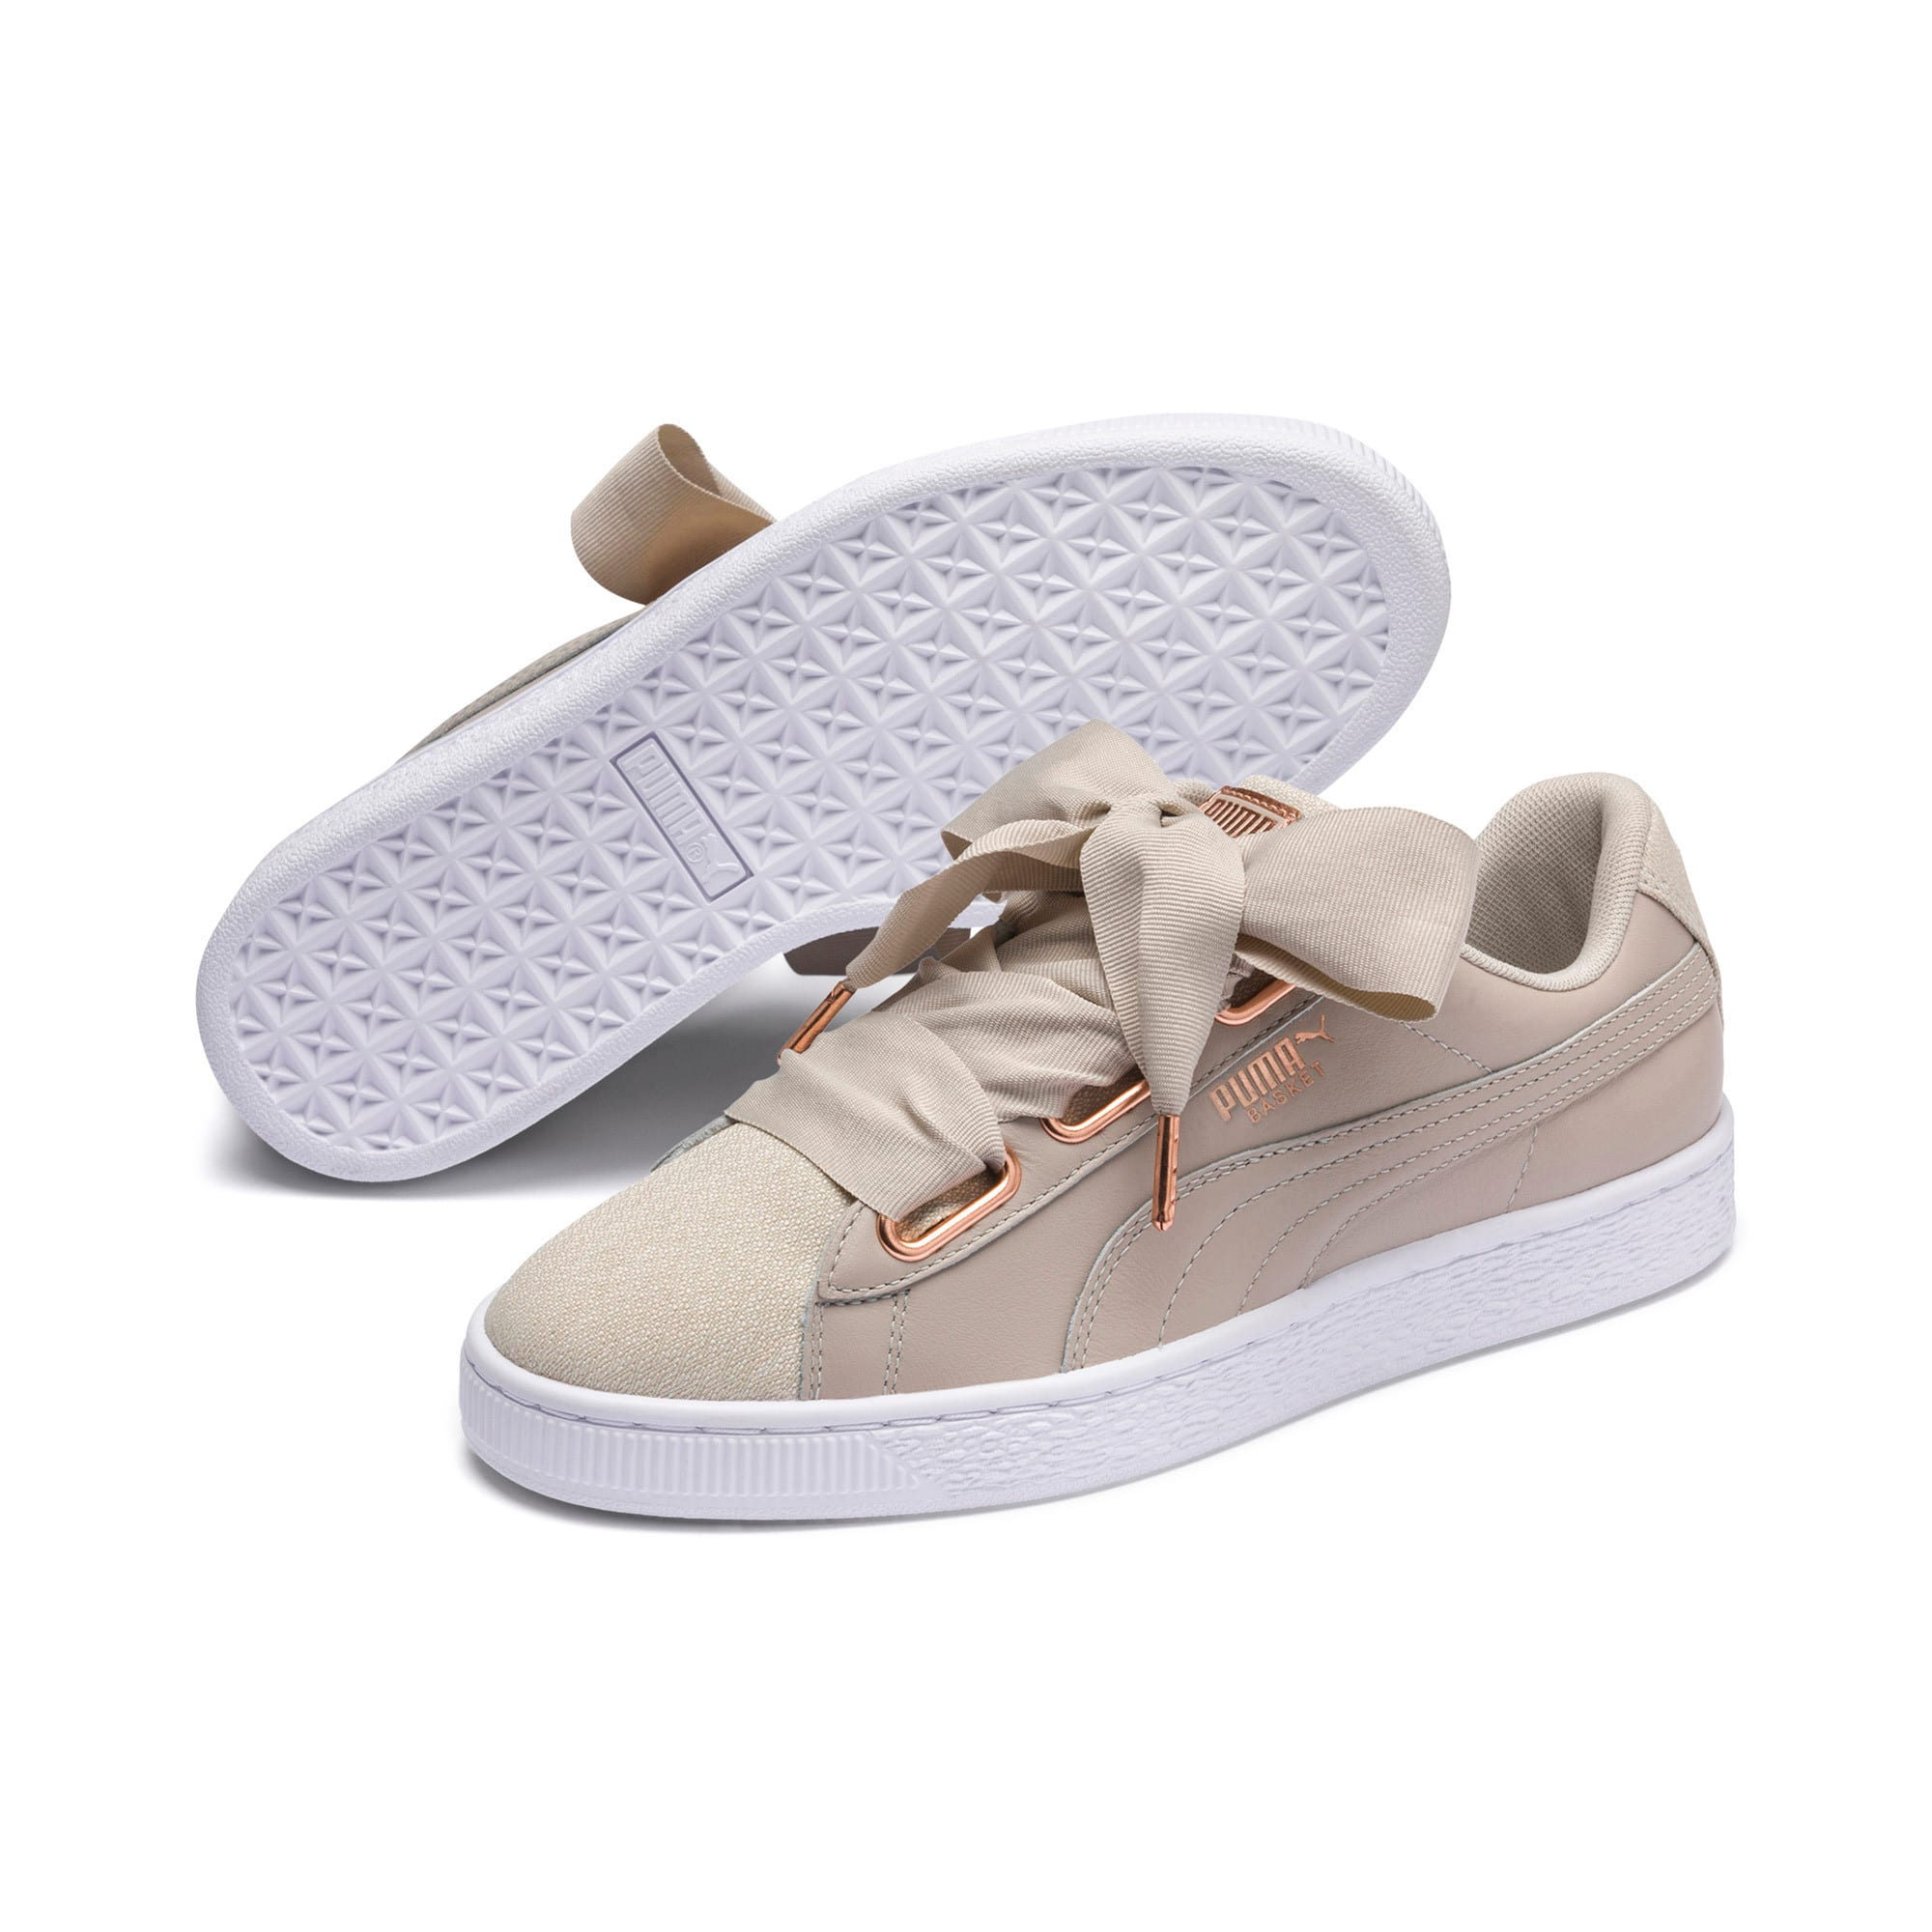 Thumbnail 2 of Basket Heart Woven Rose Women's Sneakers, Silver Gray-Puma White, medium